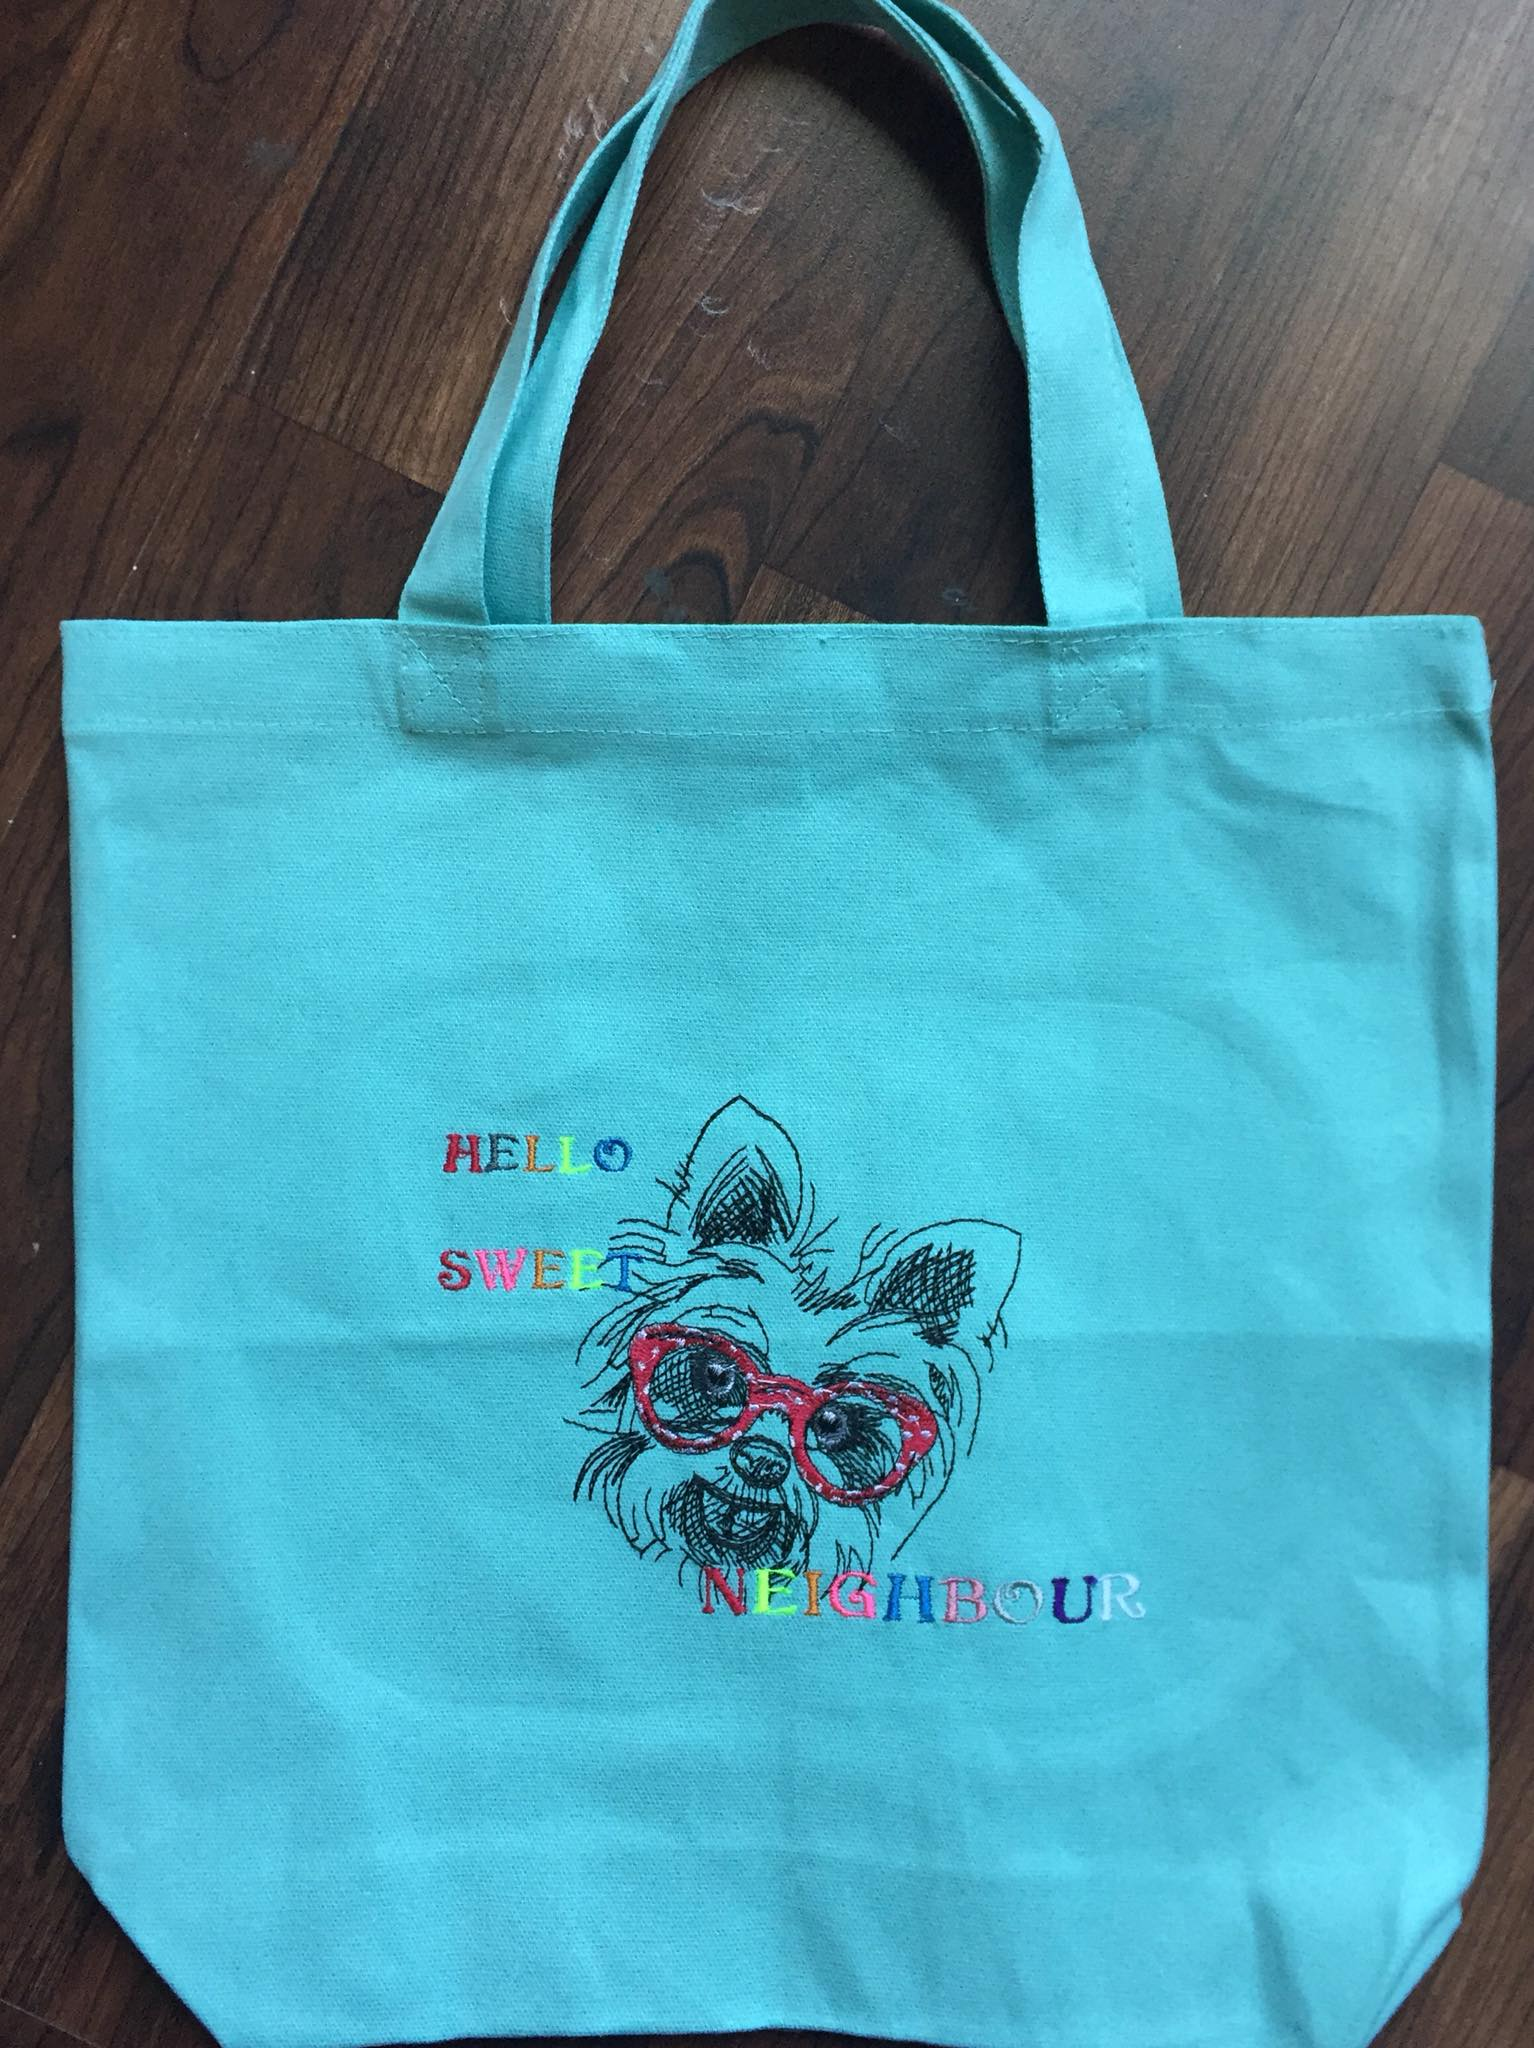 Shopping bag with cute dog embroidery design